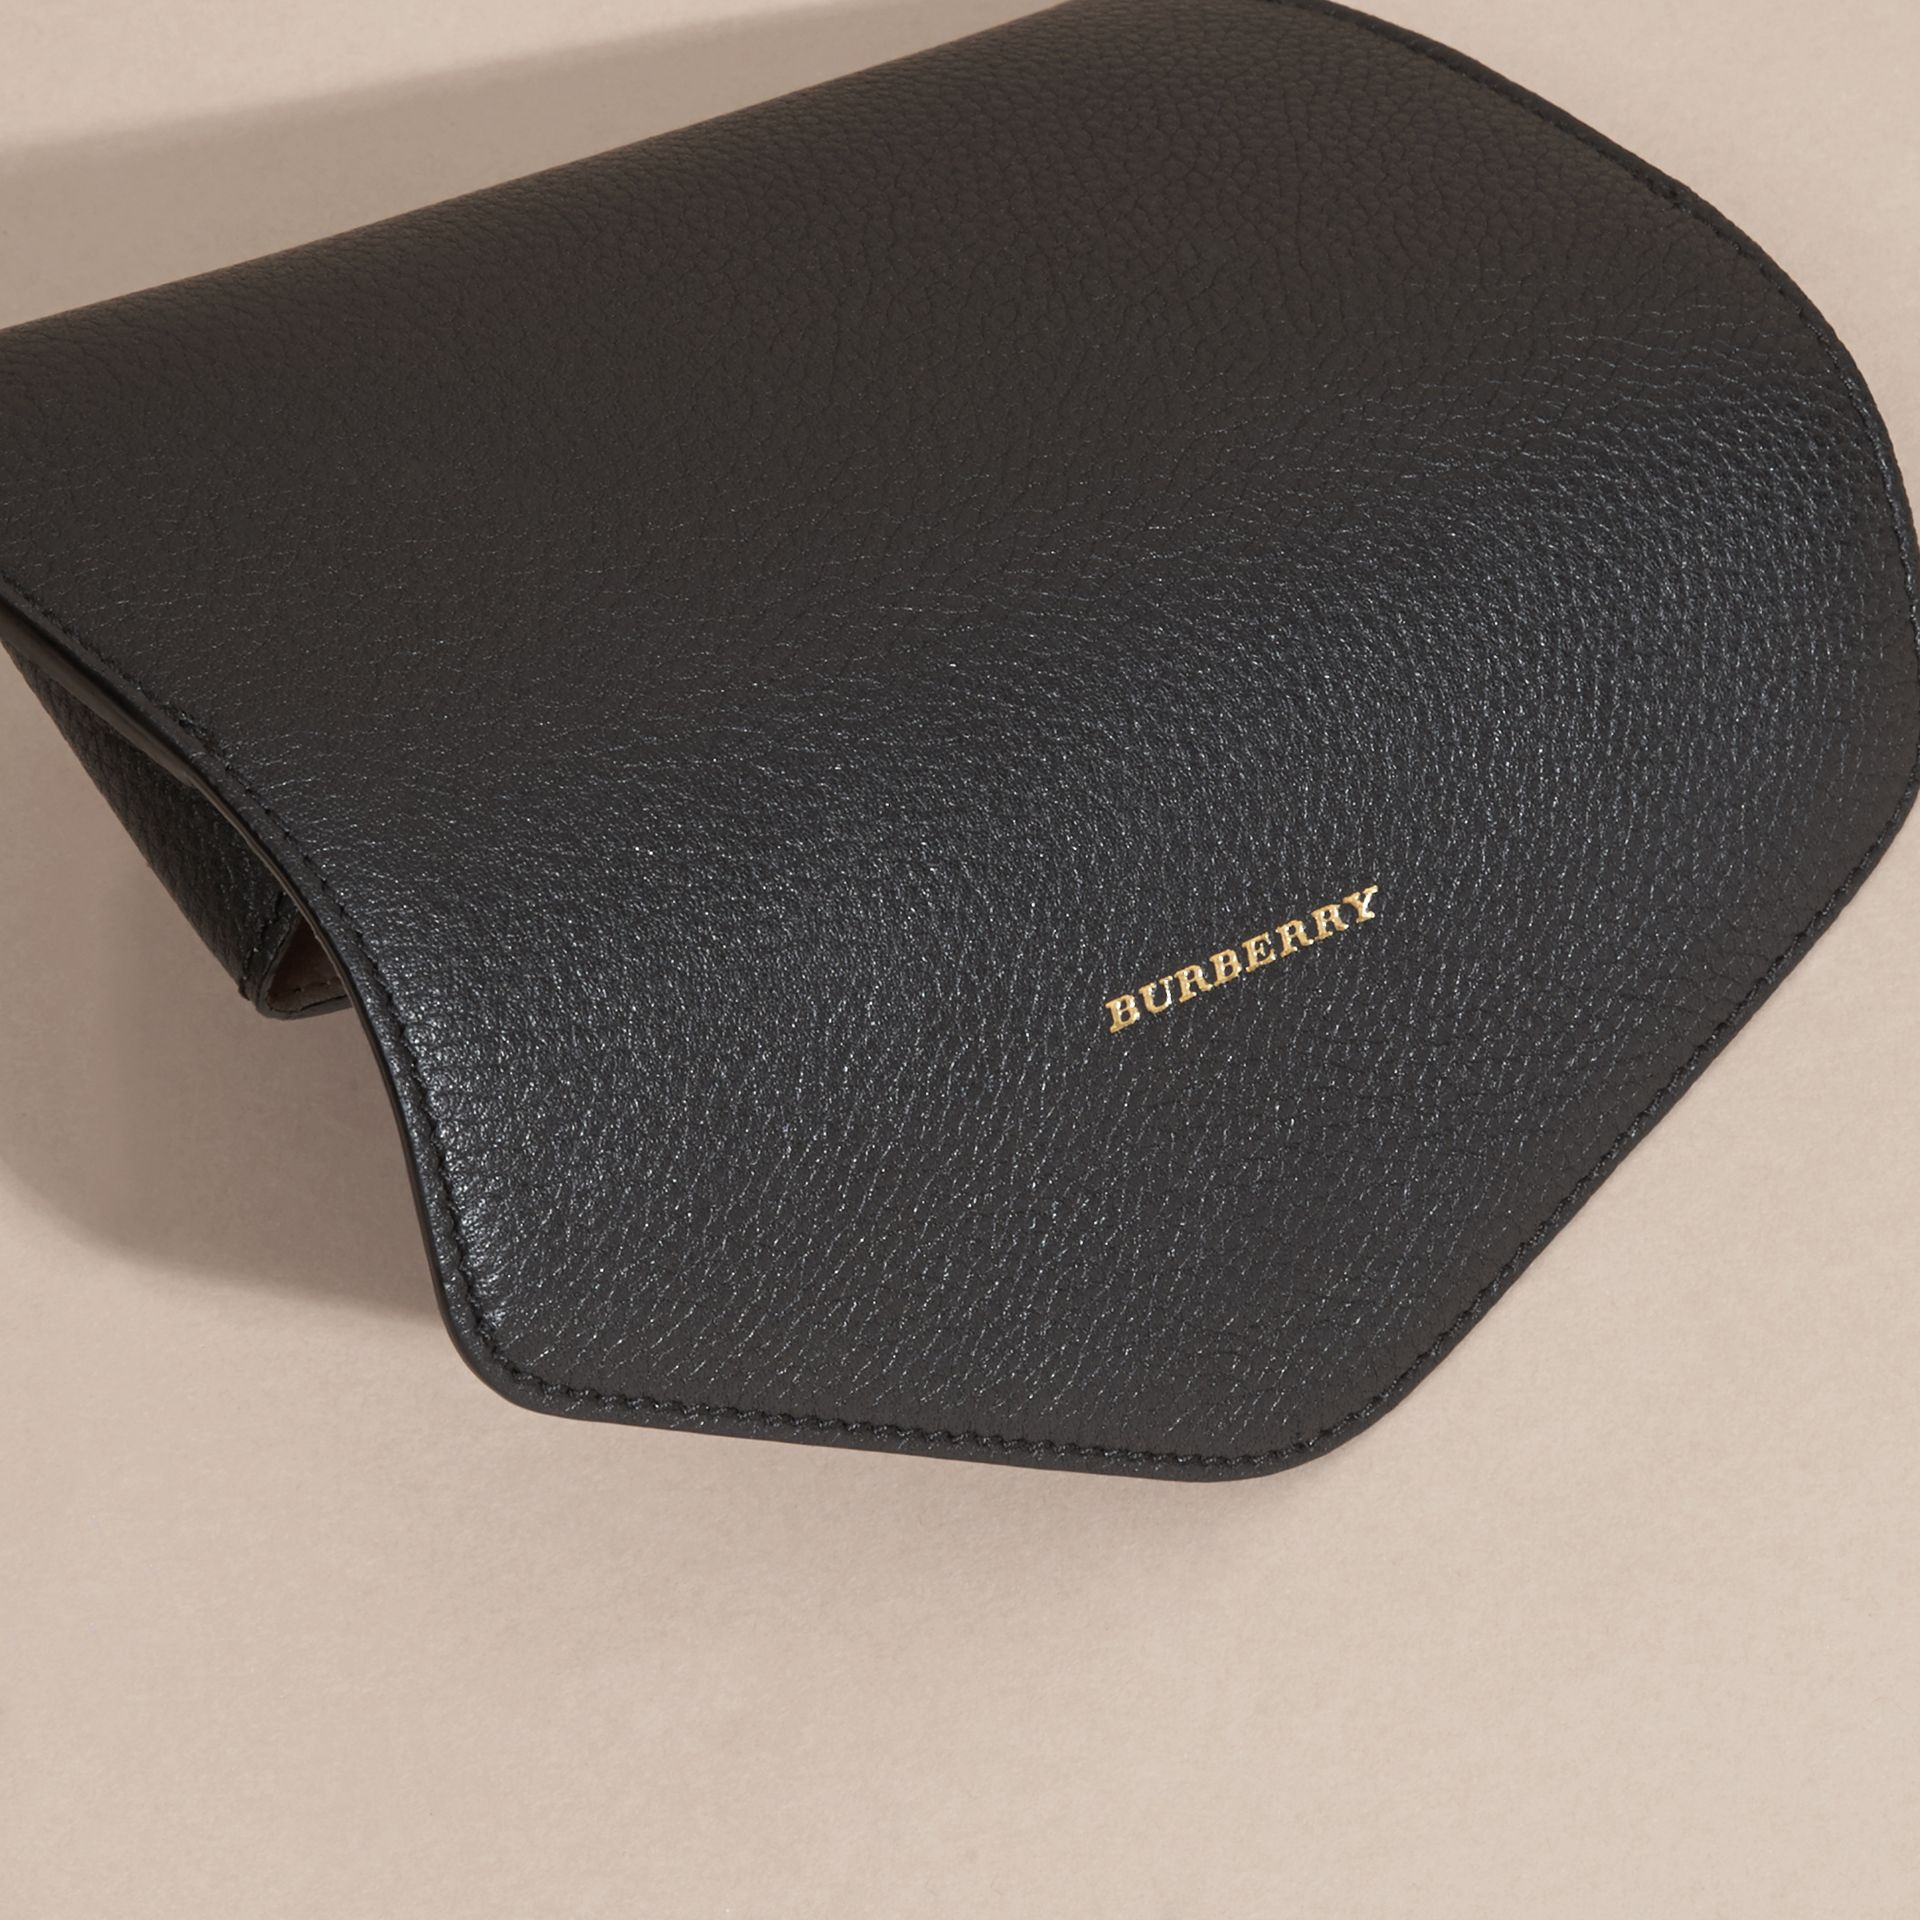 Black Grainy Leather Eyewear Case Black - gallery image 4